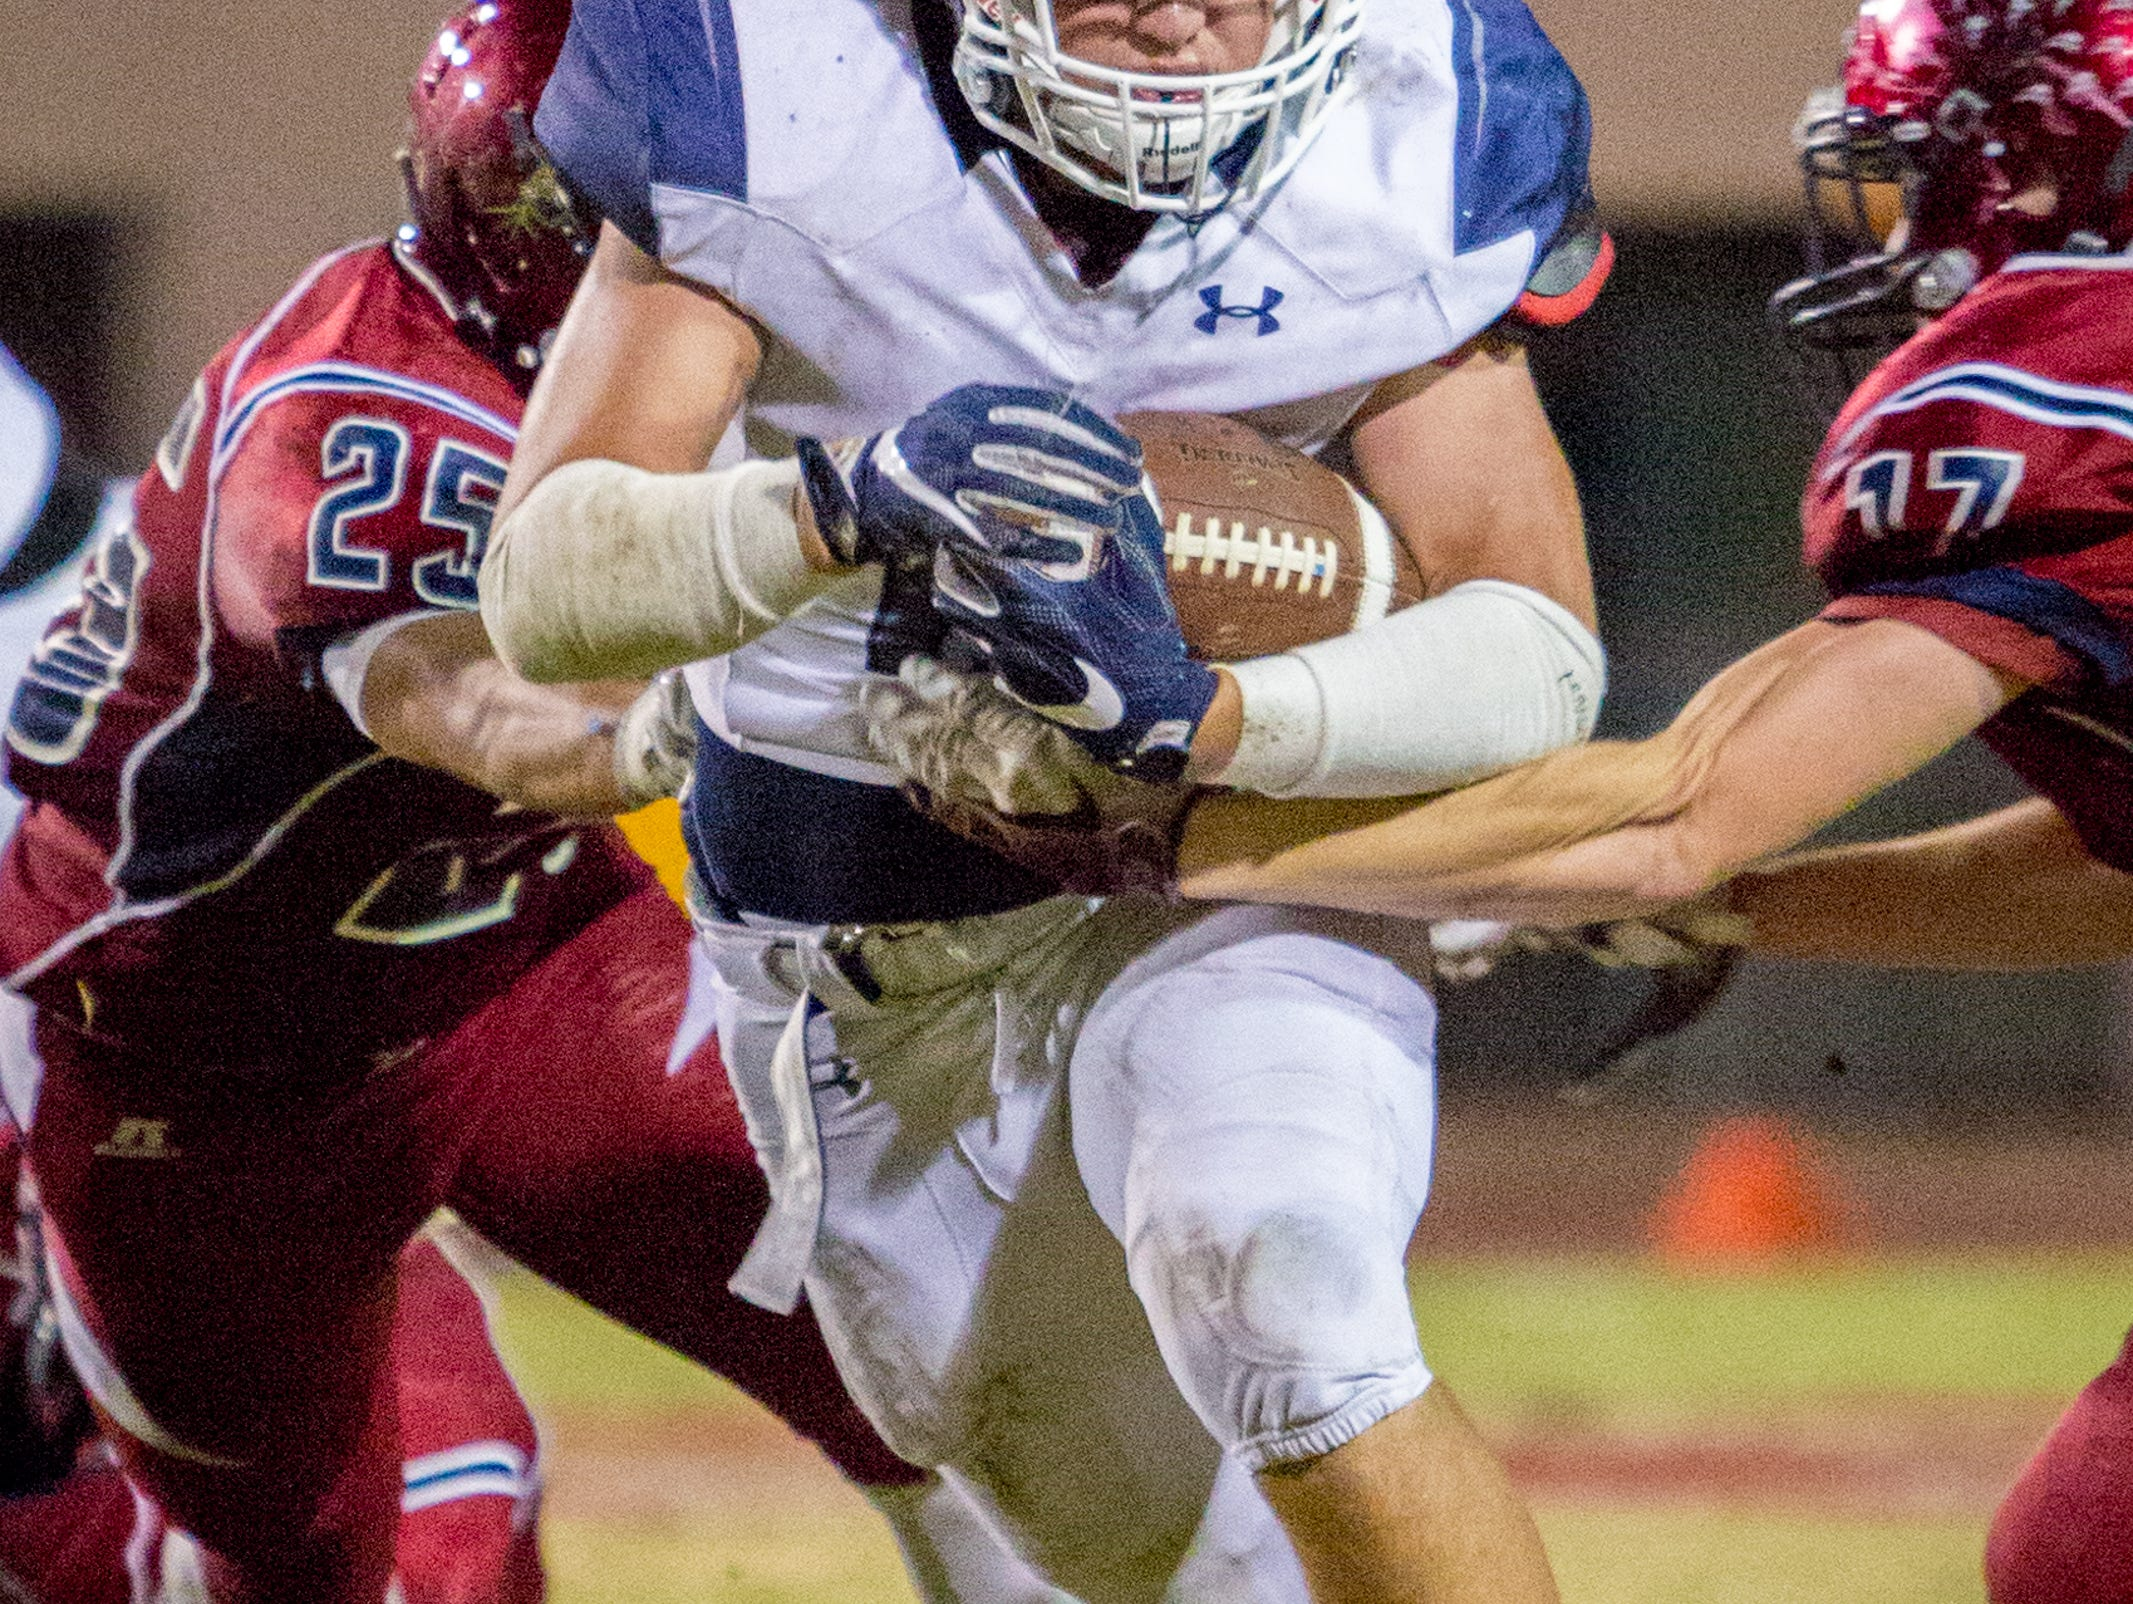 Redlands running back Doug Haugh find a hole in the middle and get a first down in a 24-10 win over La Quinta.